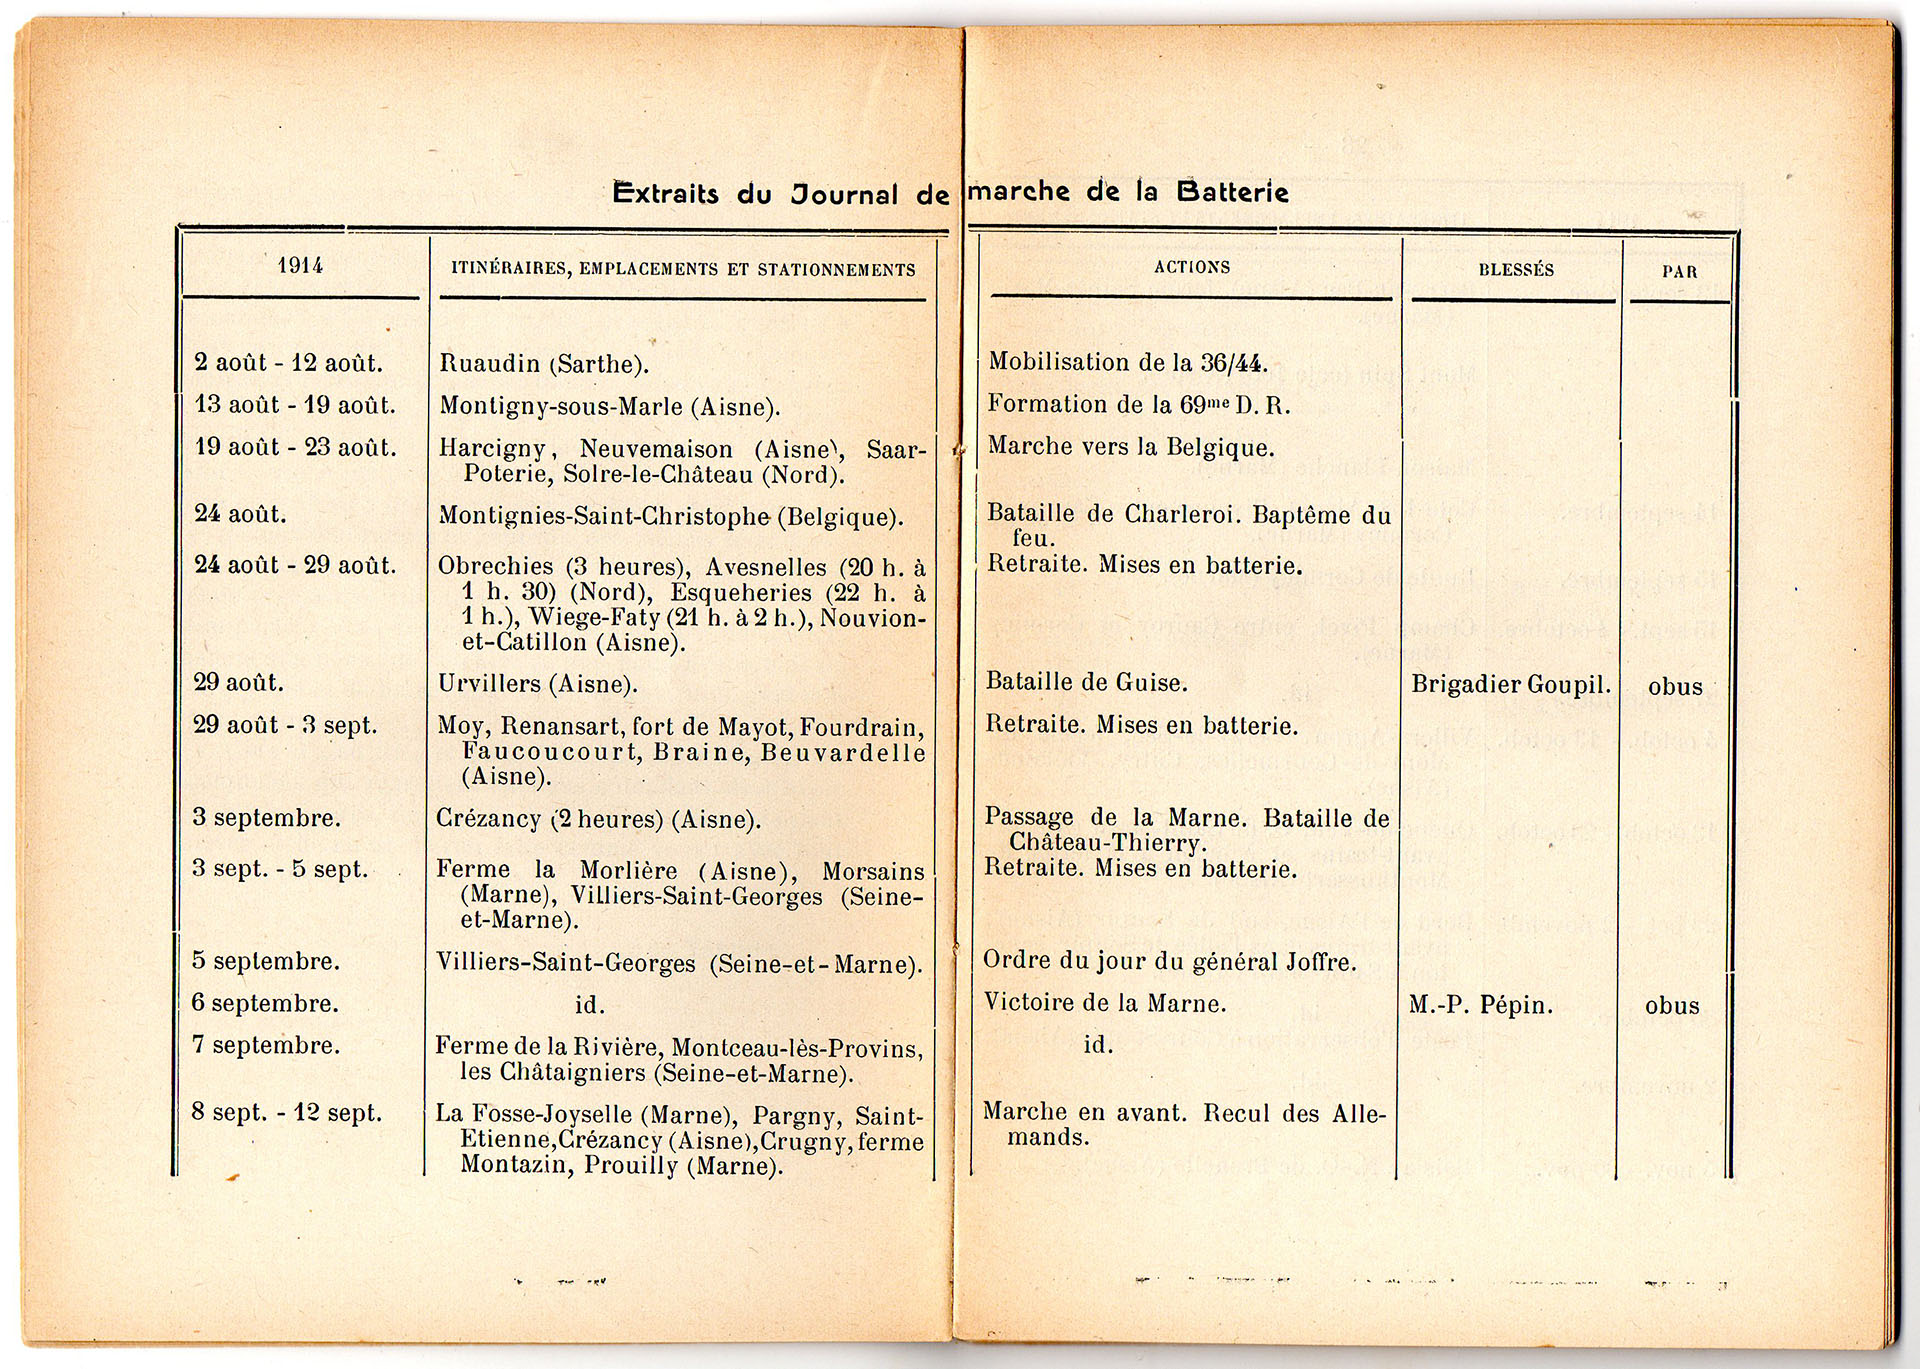 Extract from the Battery Journal kept by Amédée Tardieu recording their movements and locations, actions, injuries and deaths along with causes such as 'obus' (shell)